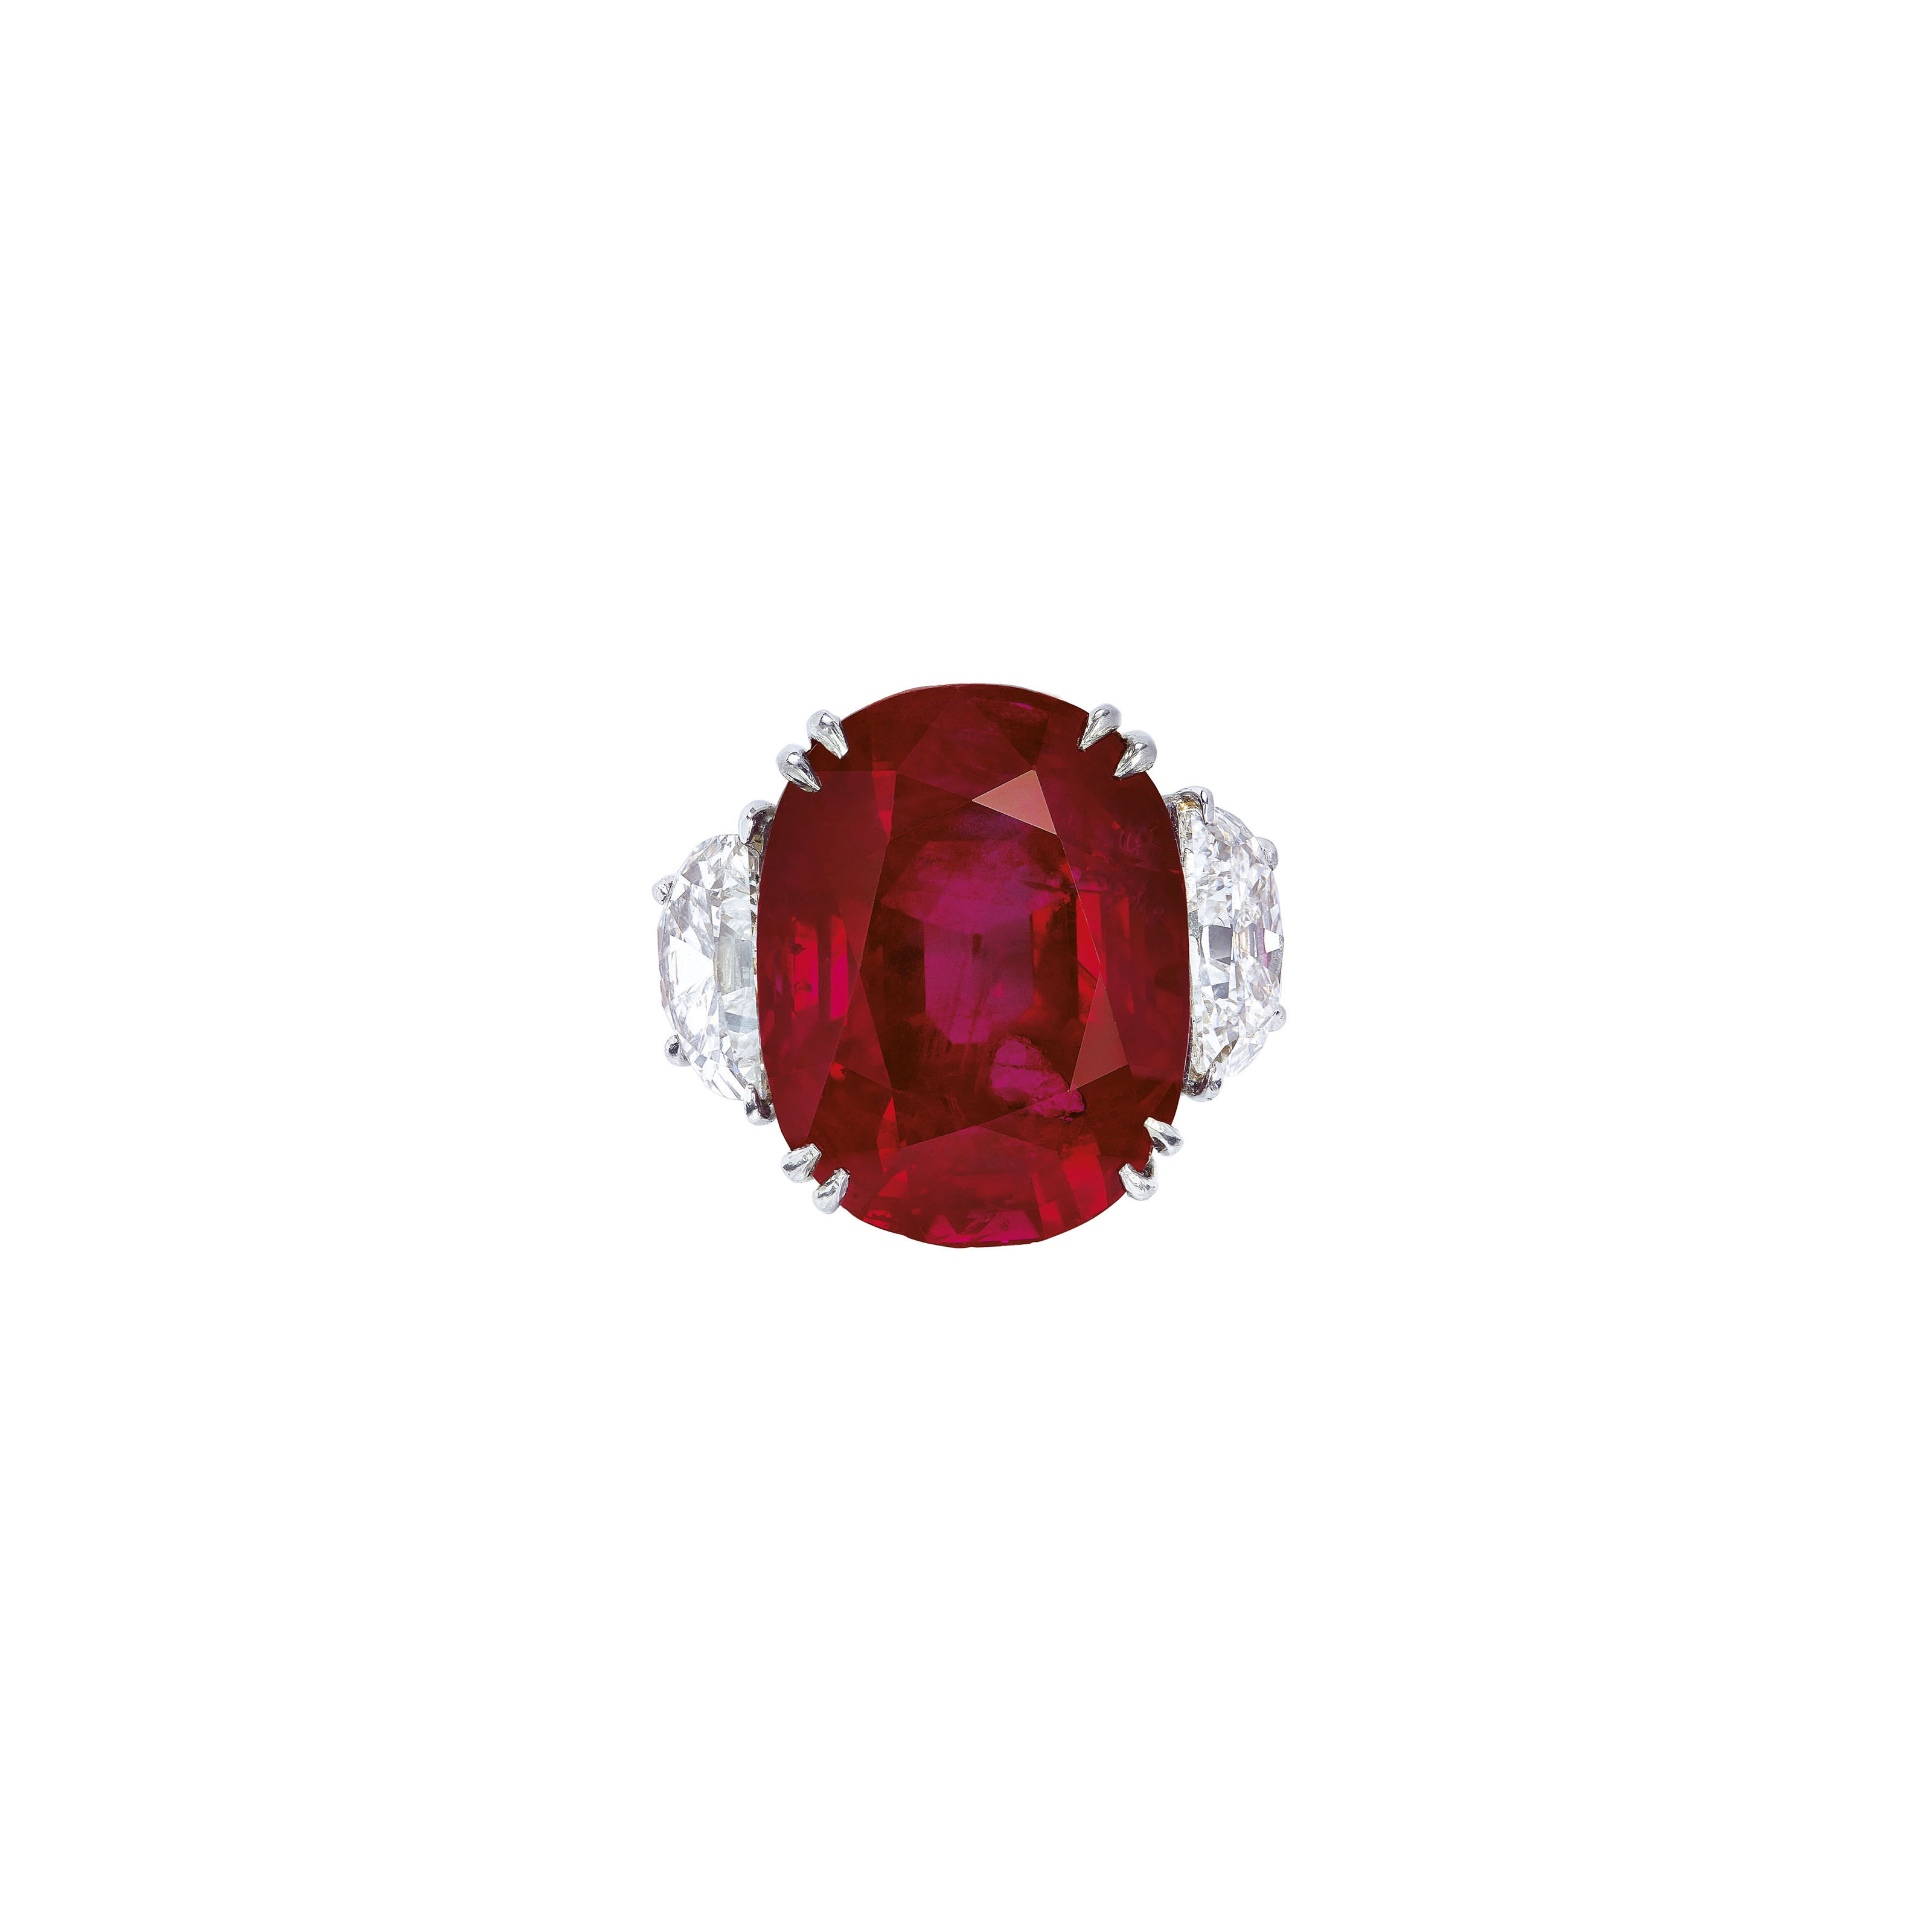 EXCEPTIONAL RUBY AND DIAMOND RING, HARRY WINSTON